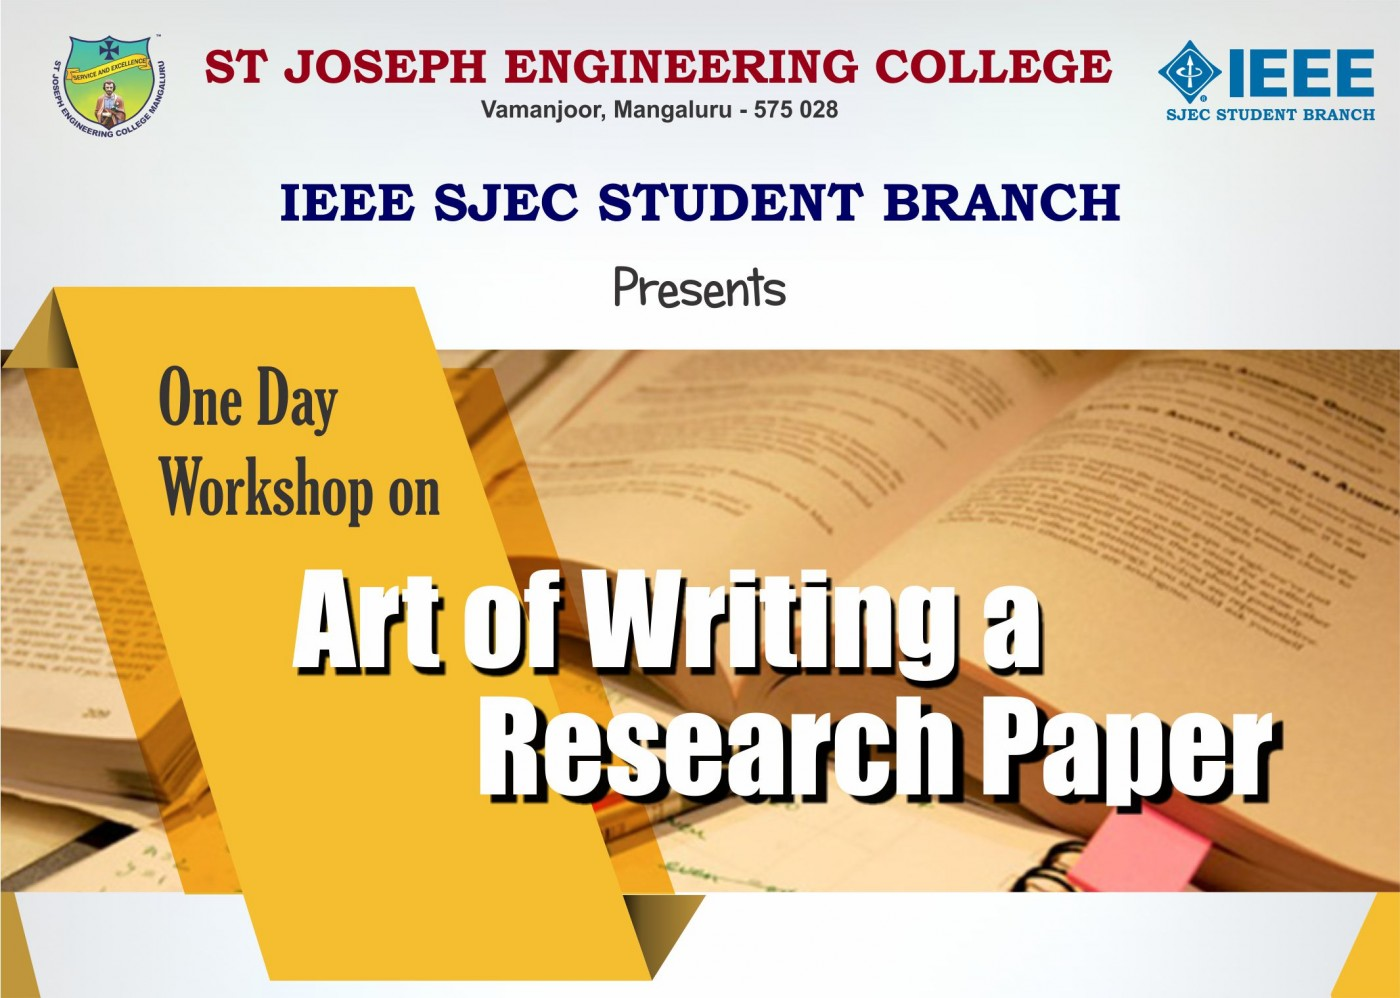 008 Workshop Banner Research Paper Writing Phenomenal The Papers A Complete Guide 15th Edition Pdf Abstract Ppt Biomedical 1400